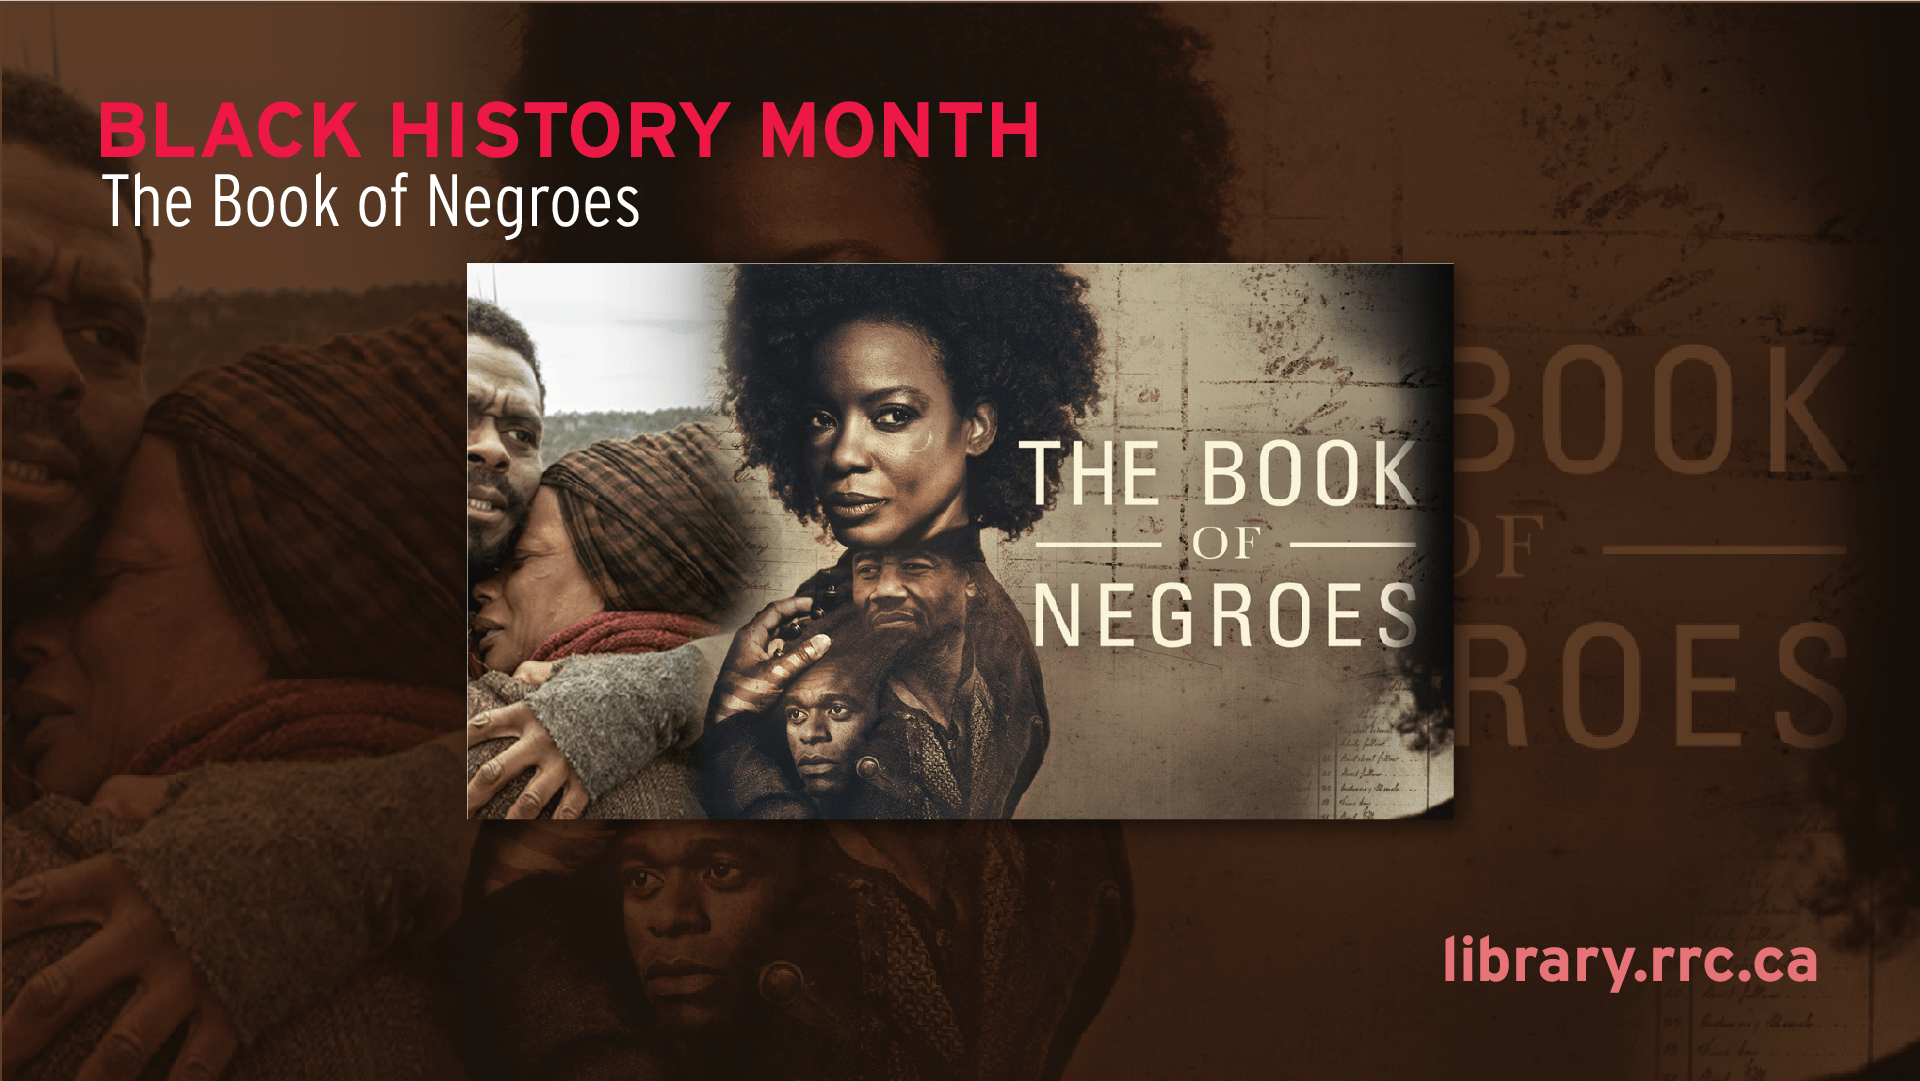 Book of Negroes cover art